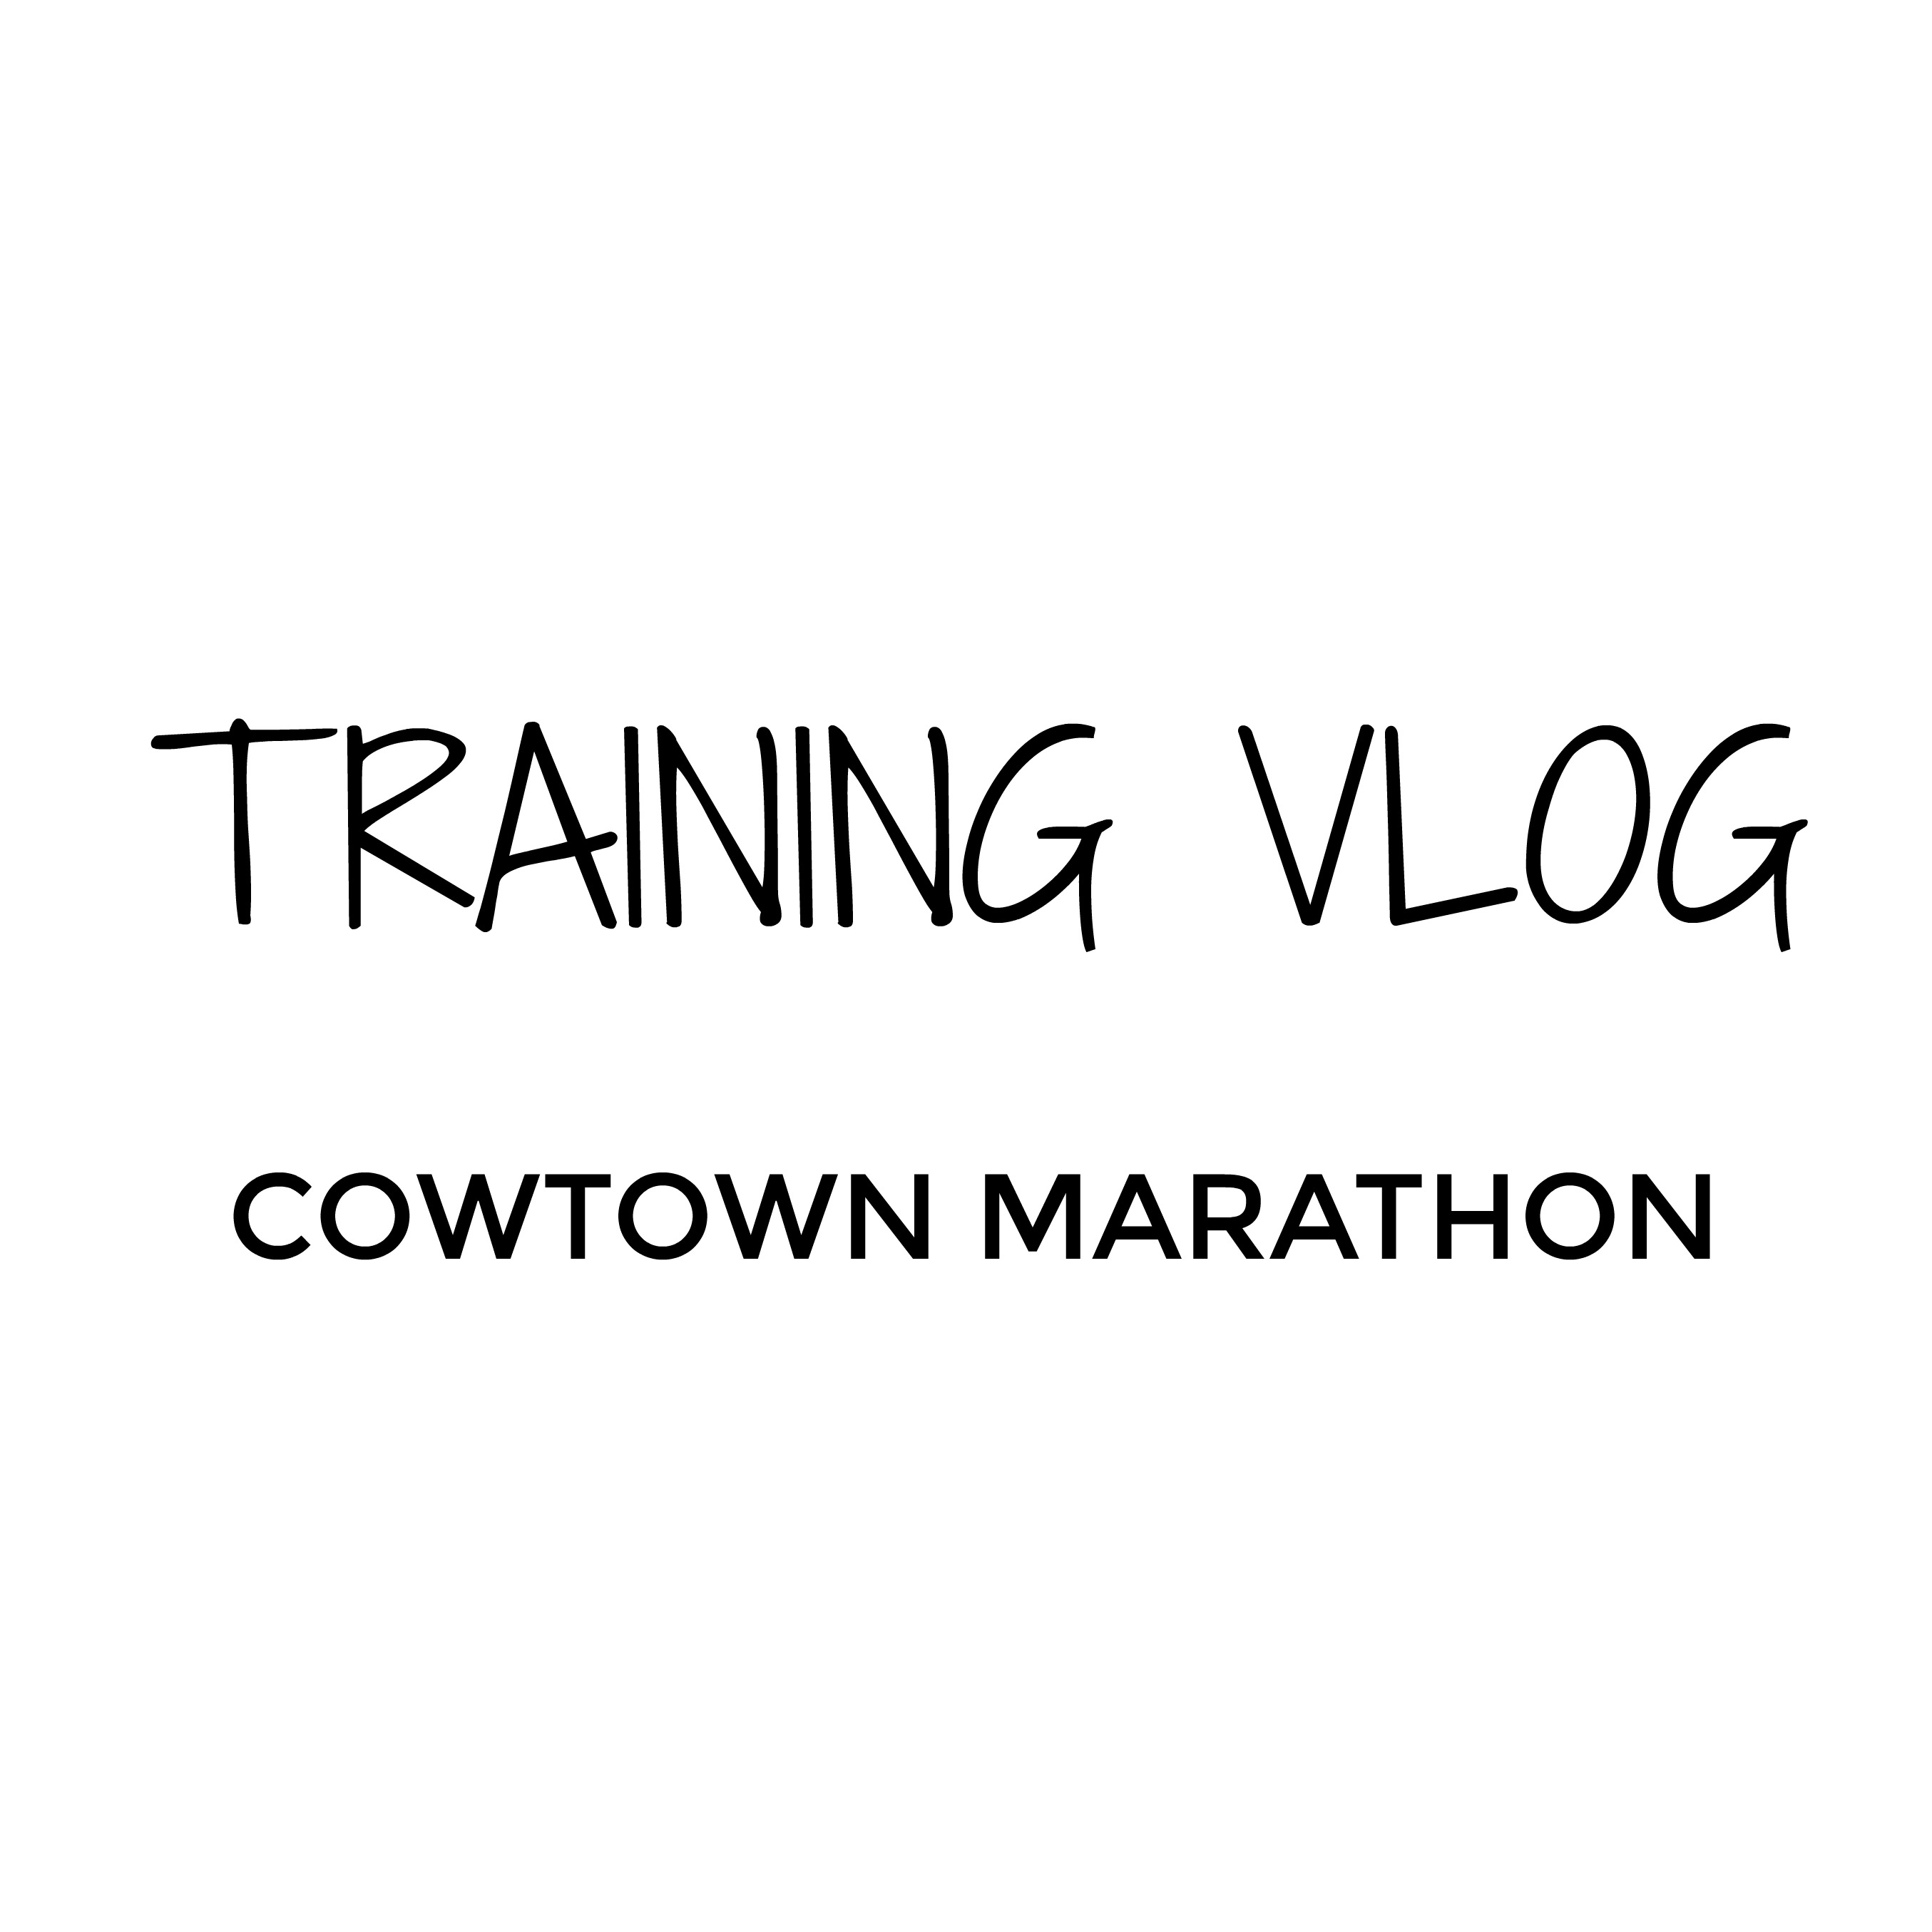 Cowtown Marathon Training Vlog